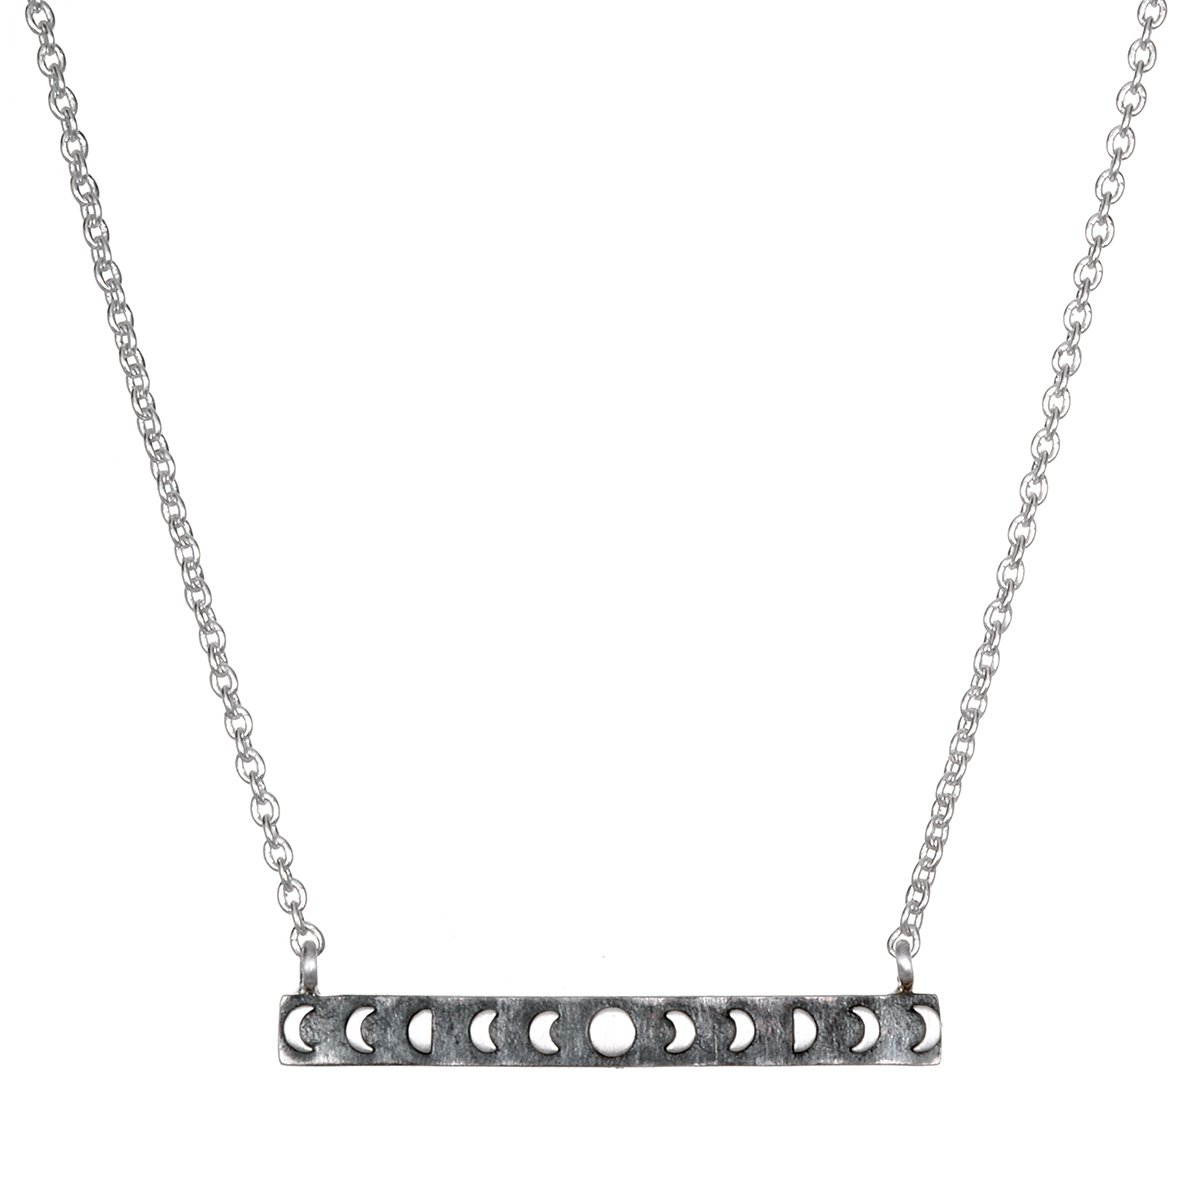 Satya Jewelry Sterling Silver Moon Phase Bar (18-Inch) Pendant Necklace NS2-MOON-L18